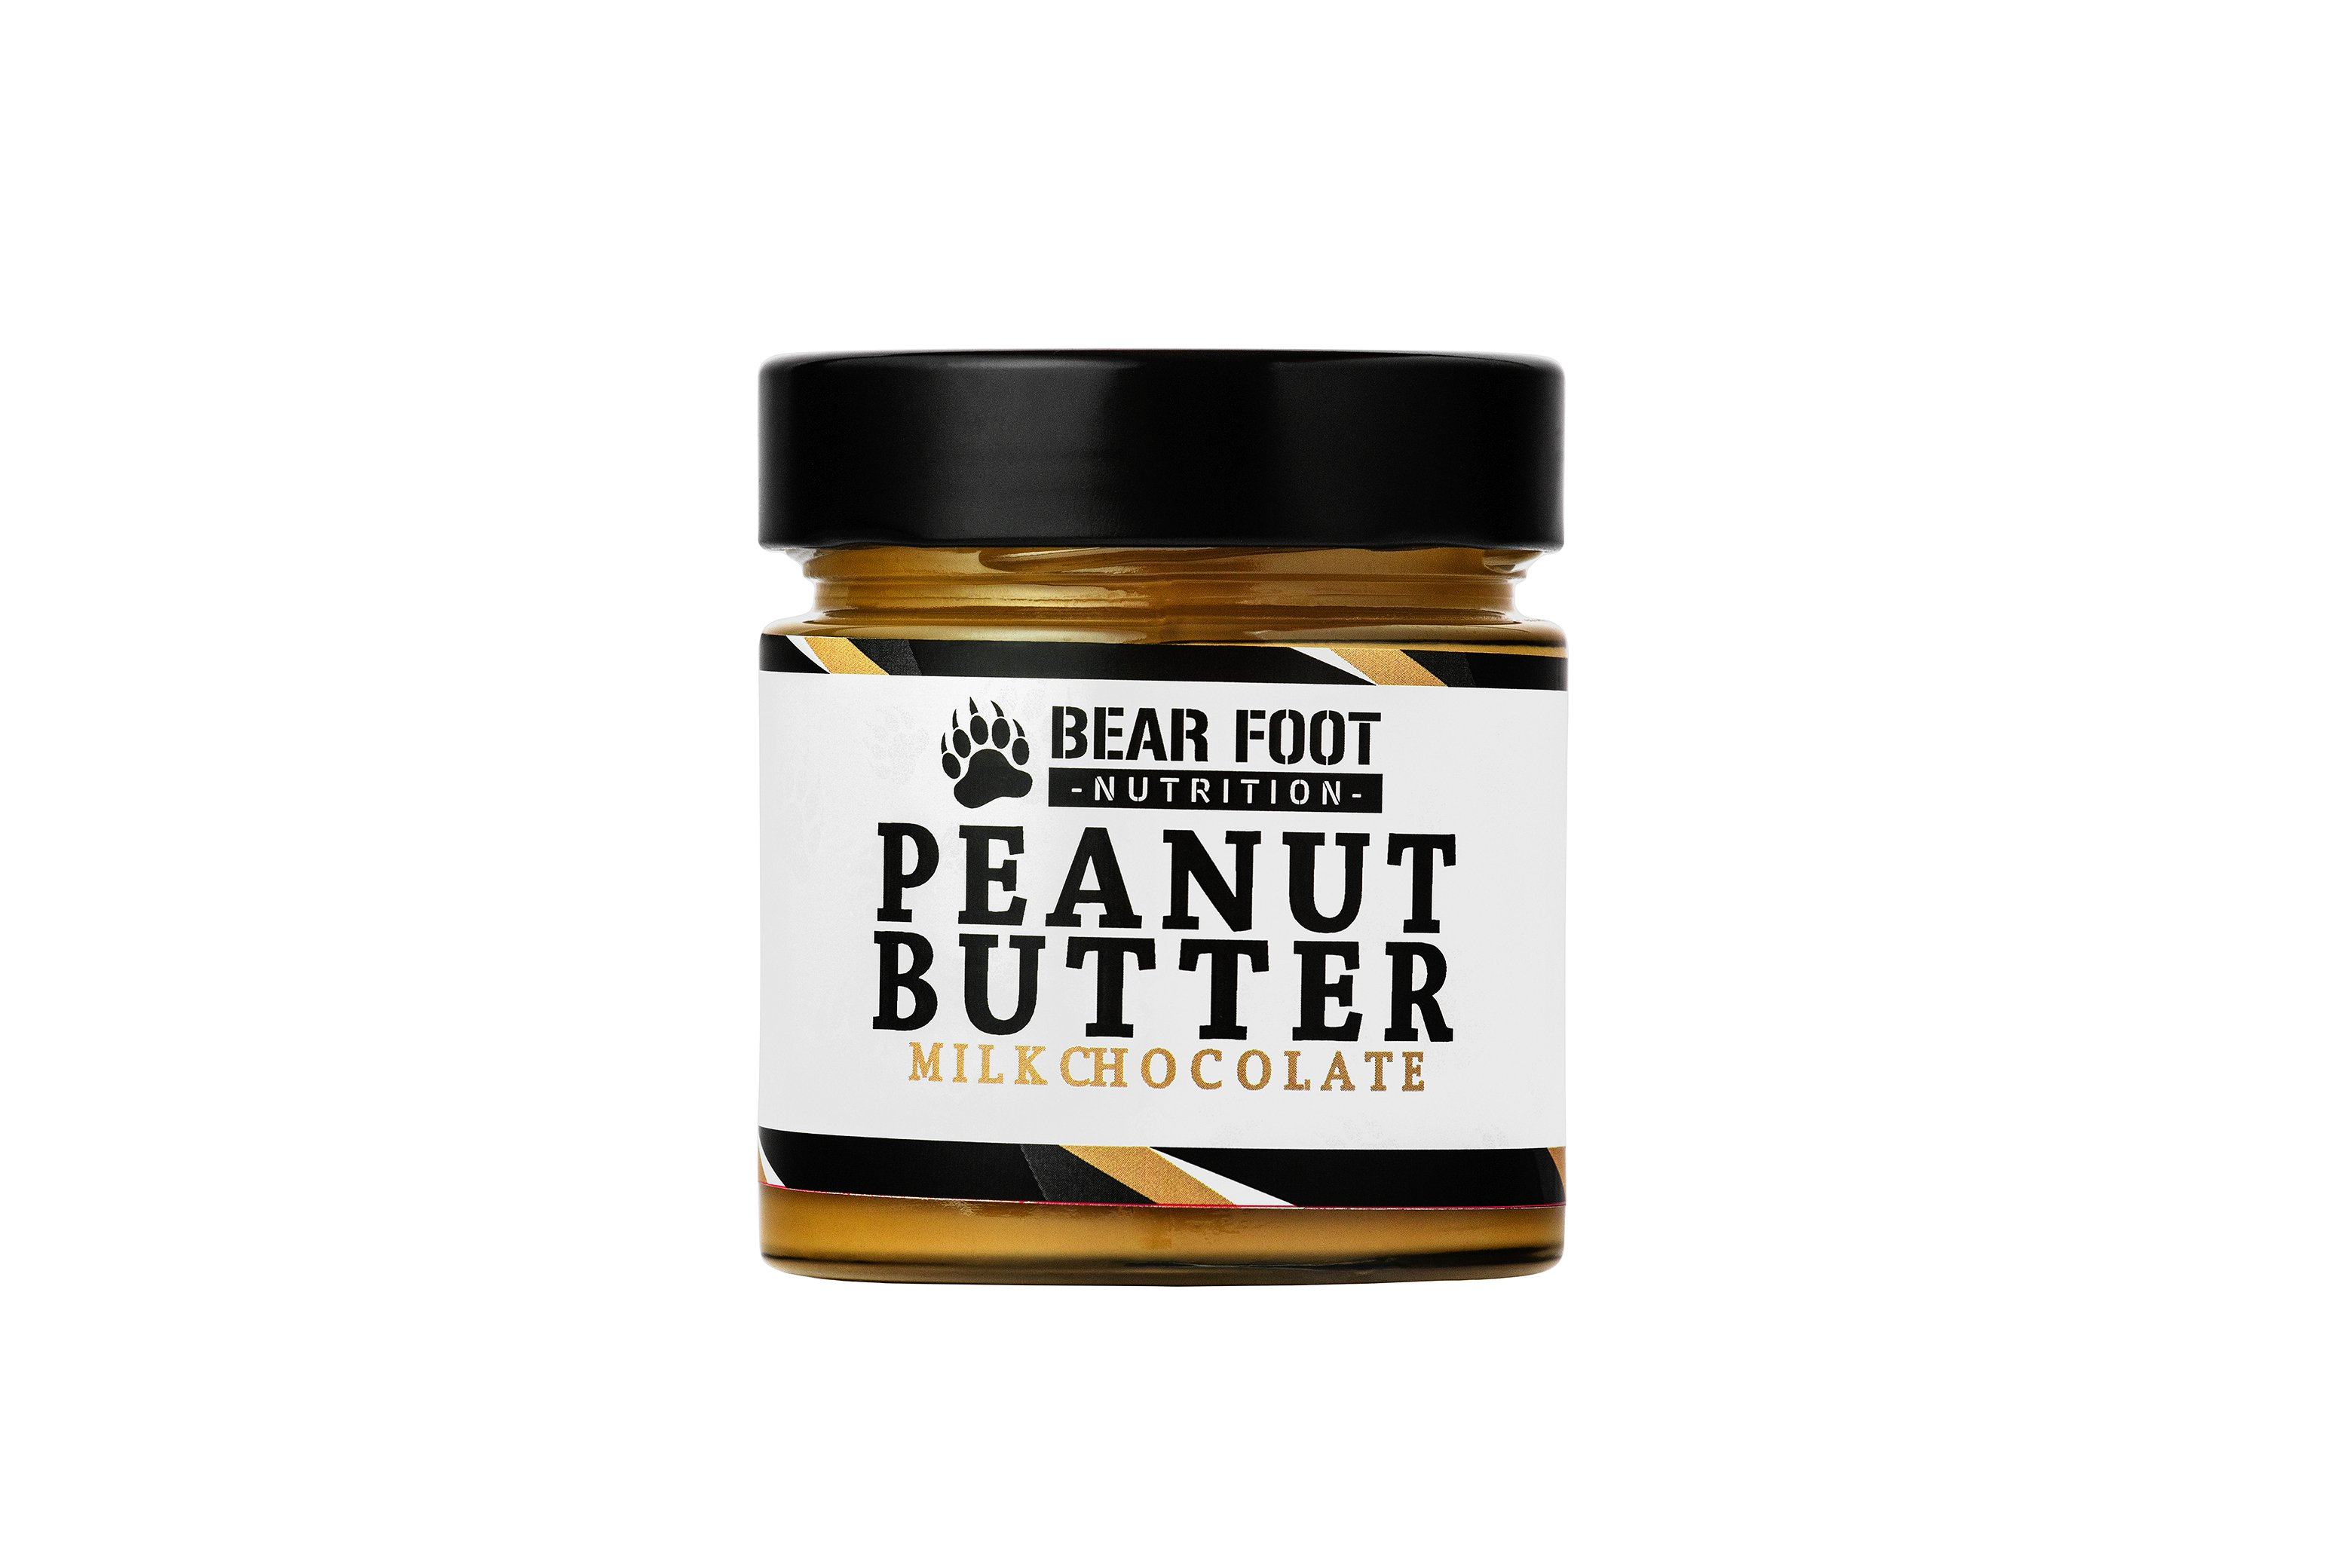 Bear Foot Peanut Butter, Milk Chocolate, 250g